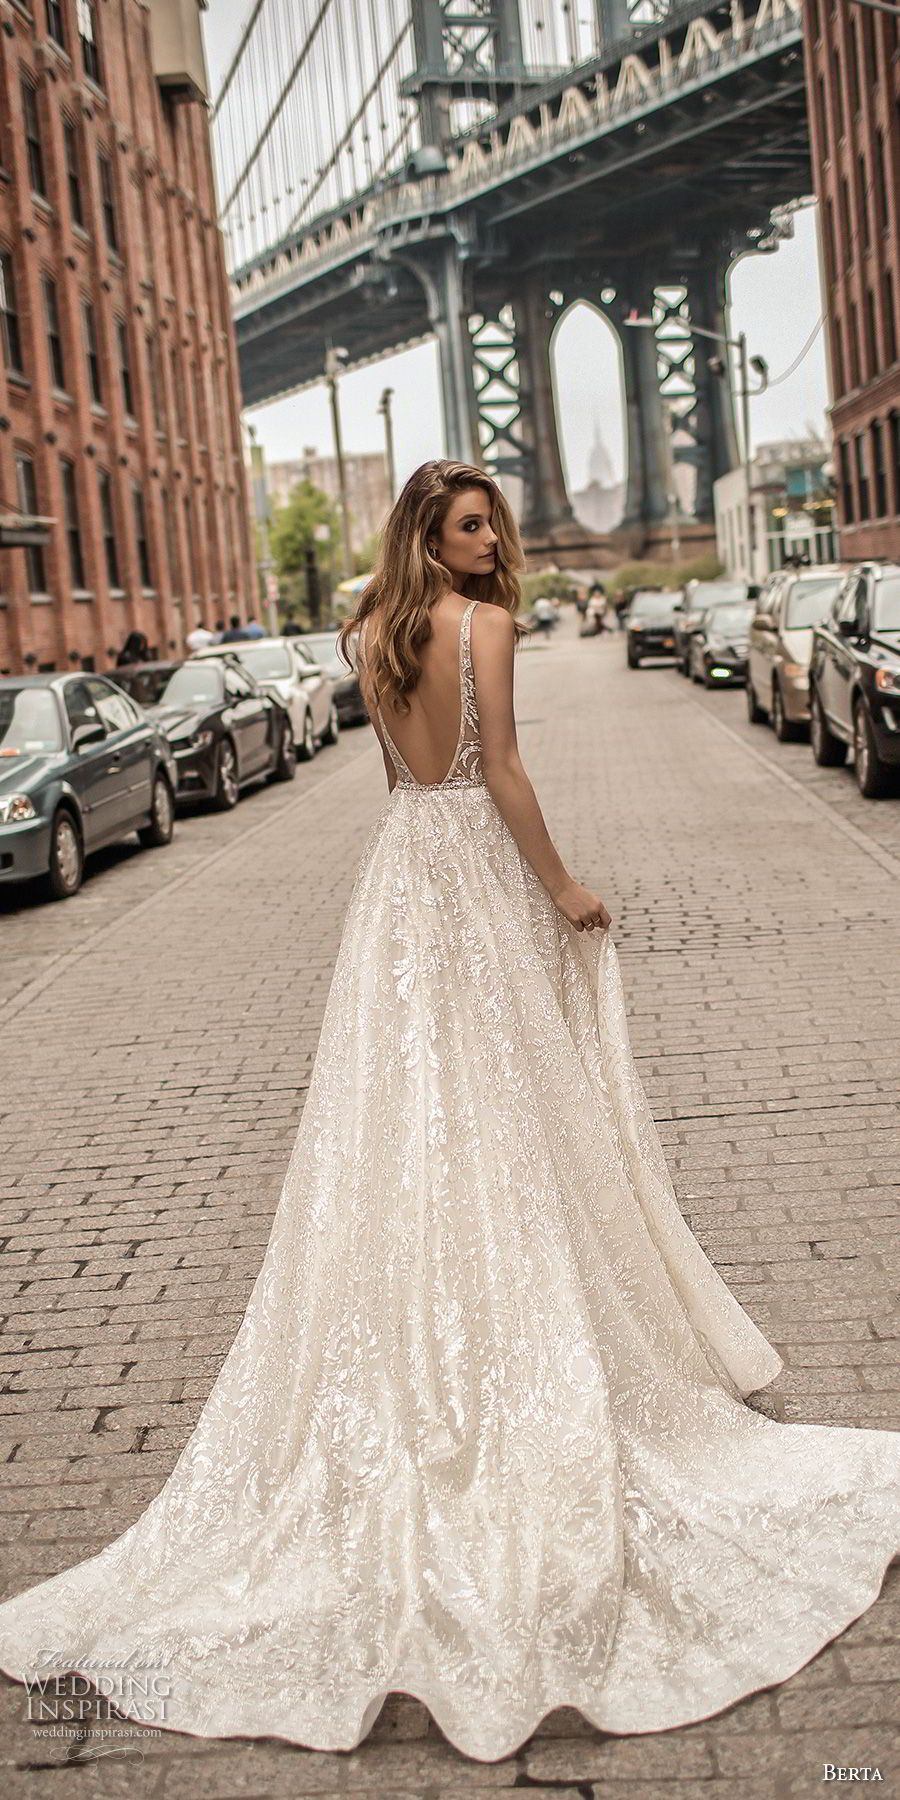 Wedding dress with bow on back  Berta Spring  Wedding Dresses u Campaign Photos  Wedding dress